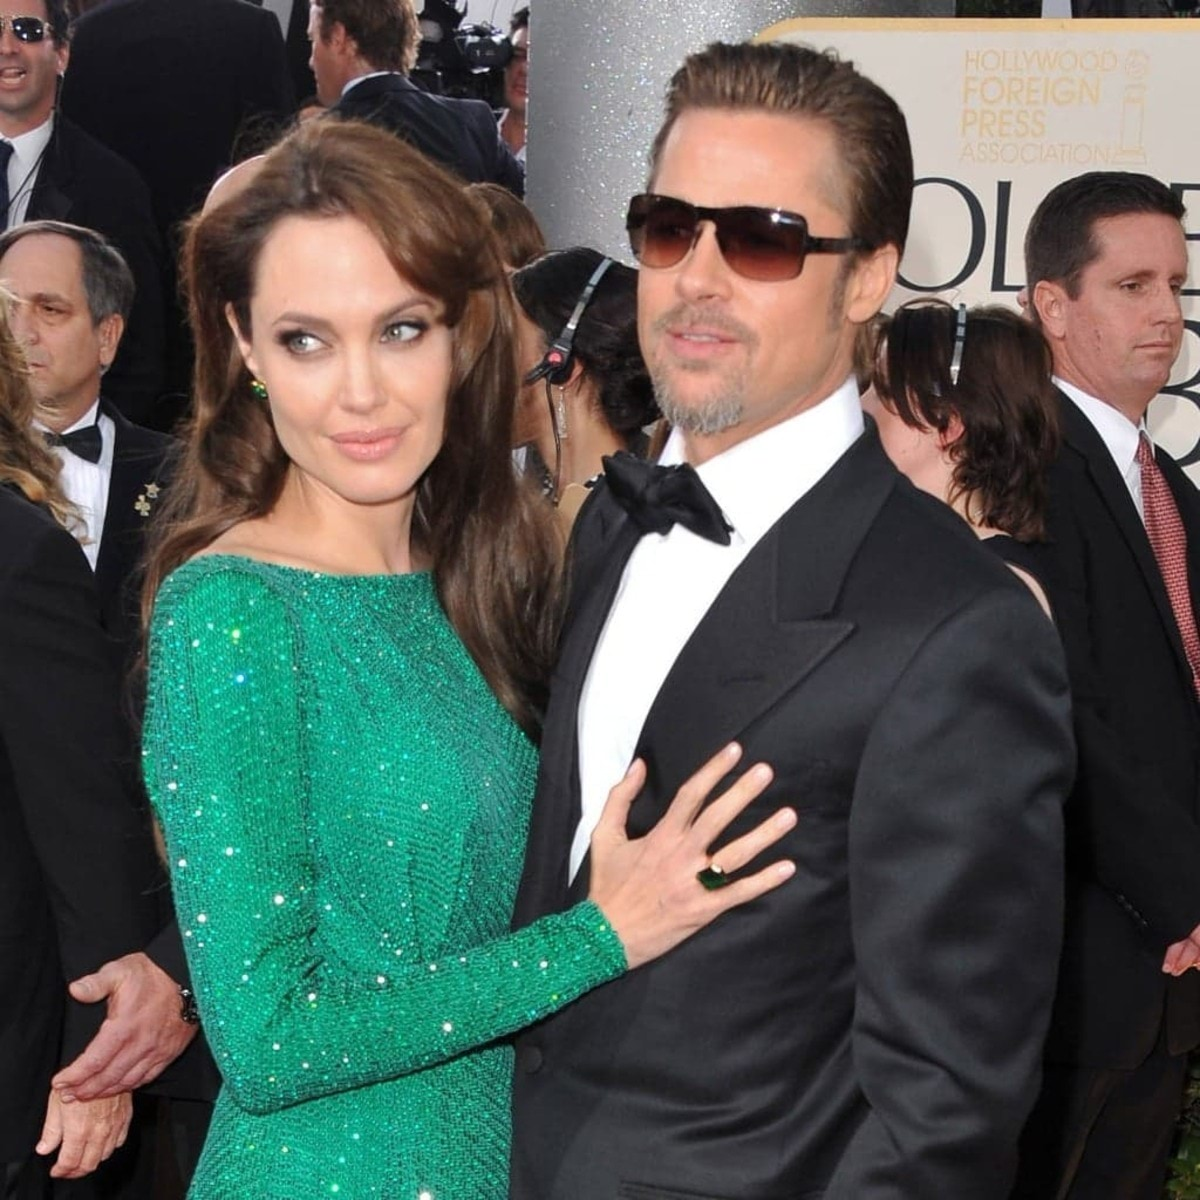 Best-Brad-Pitt-Angelina-Jolie-Red-Carpet-Pictures-2011